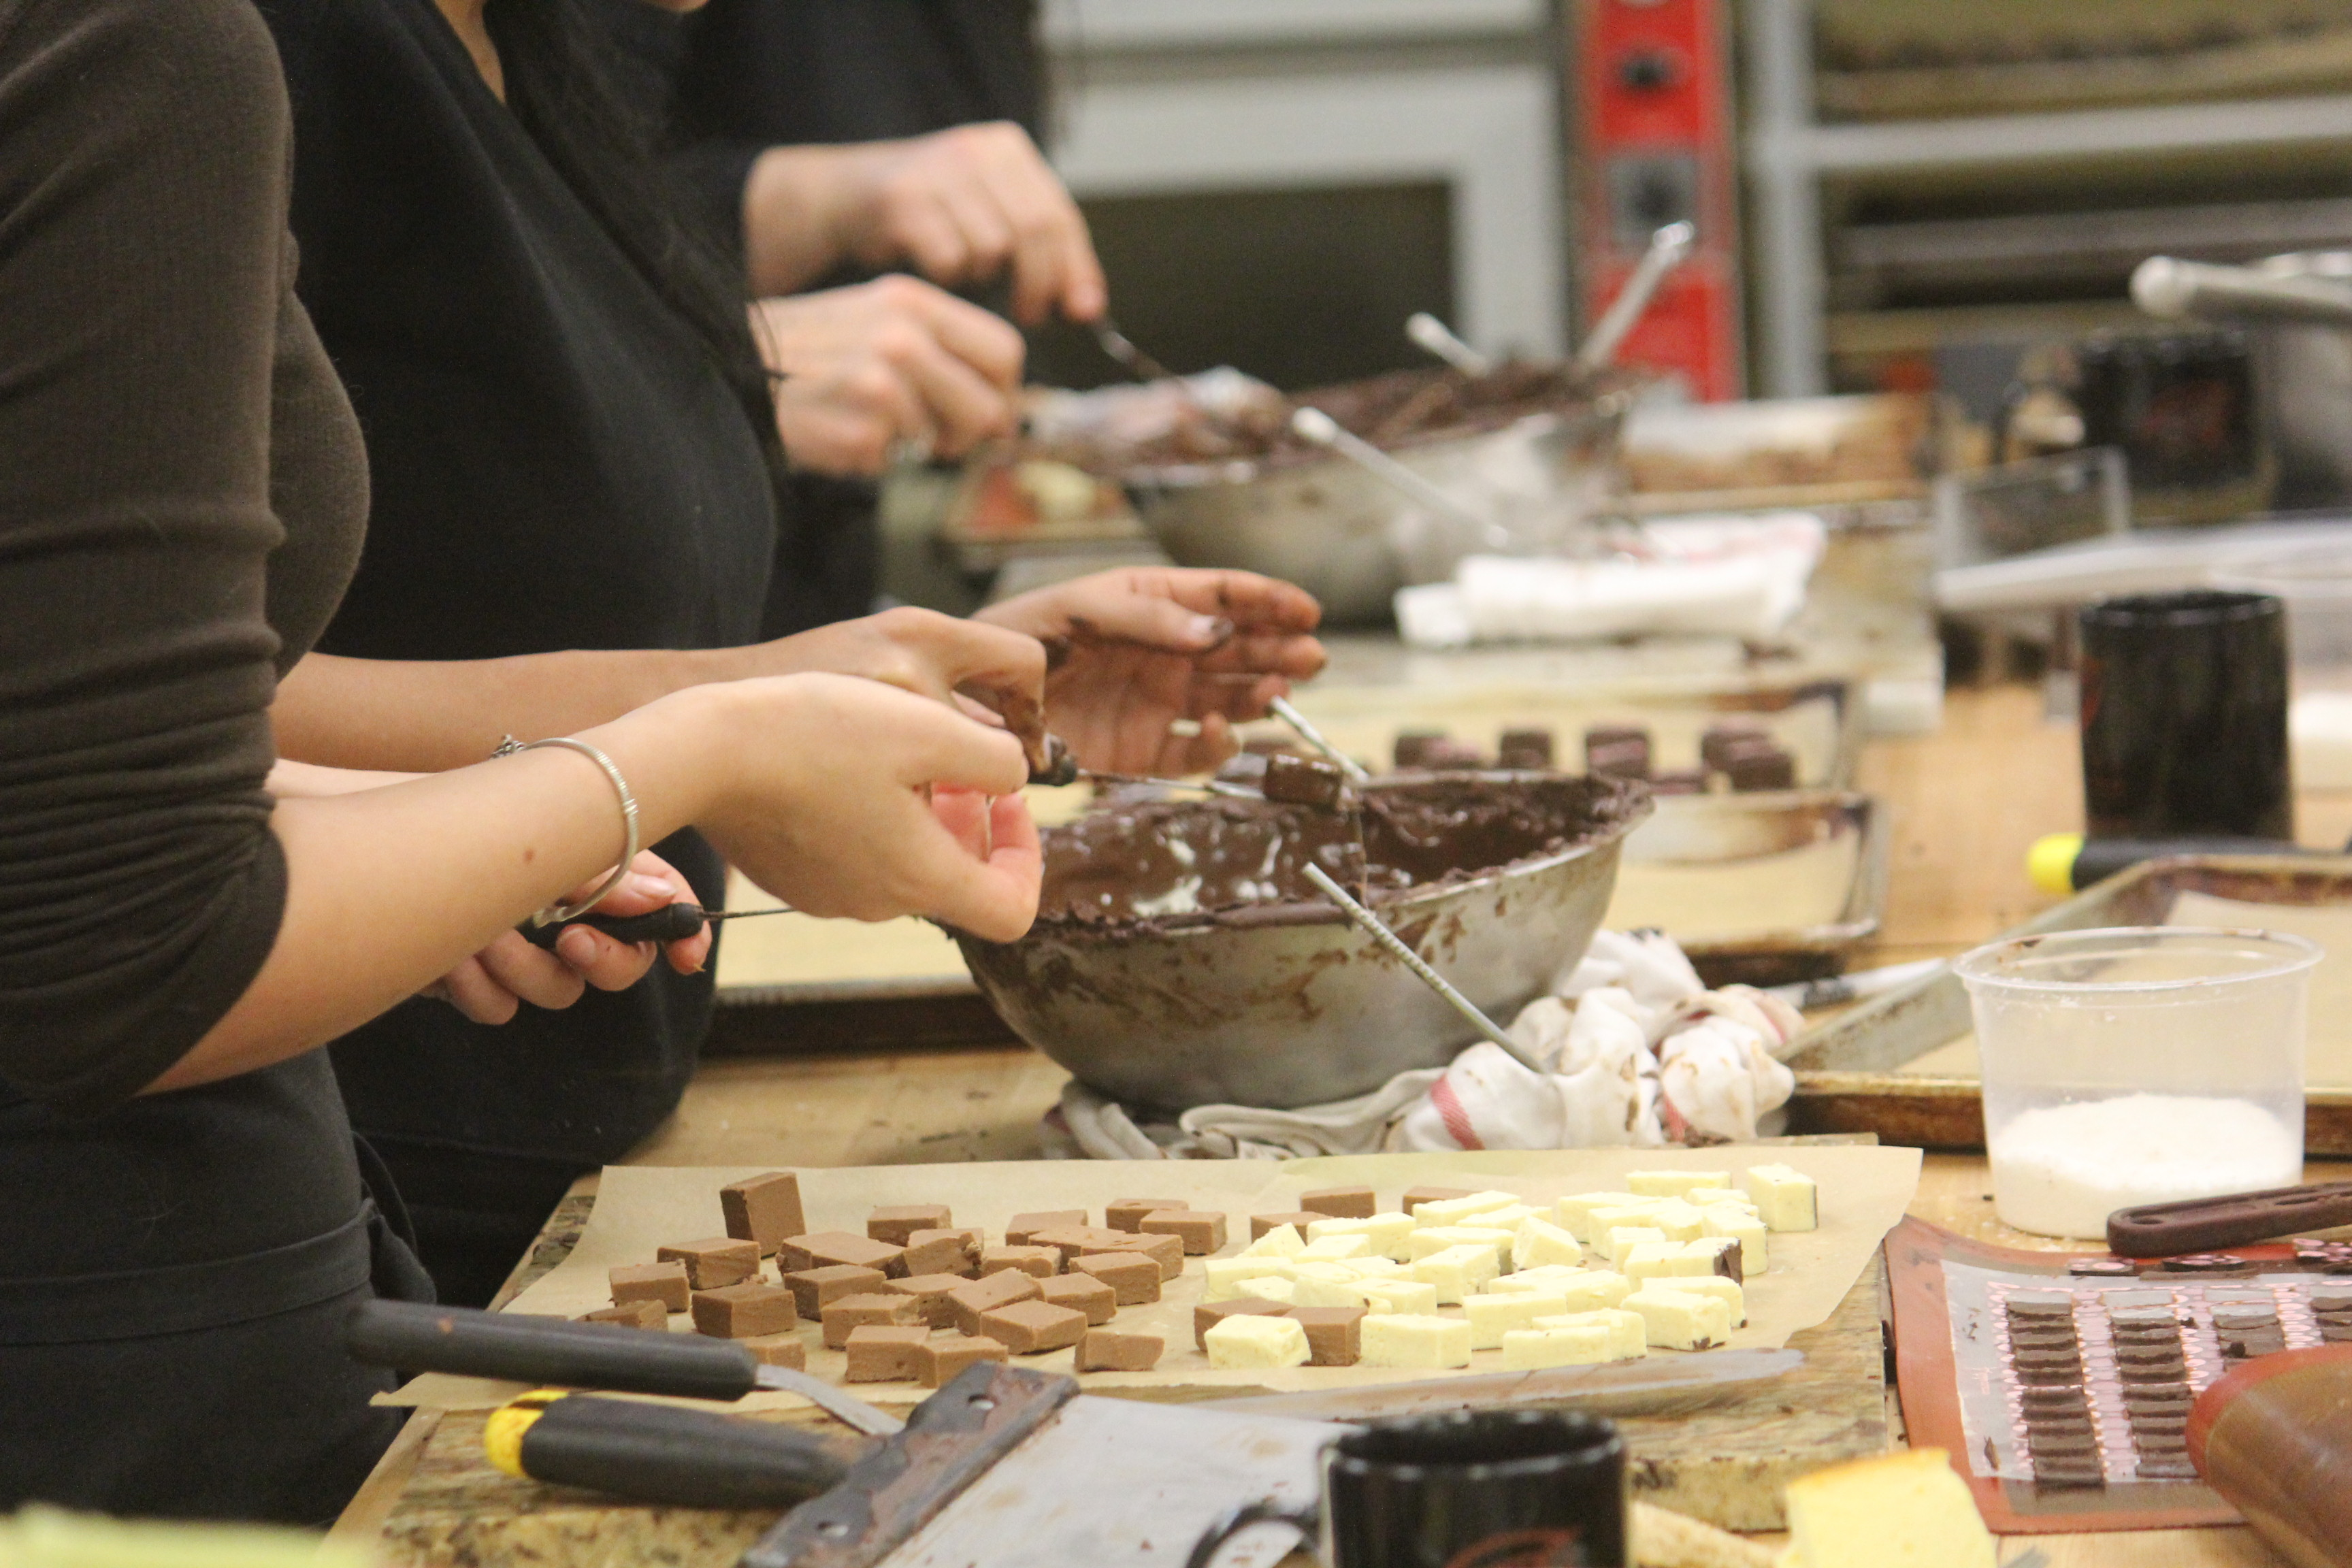 Gallery Pastry School And Pastry Training Centre Of